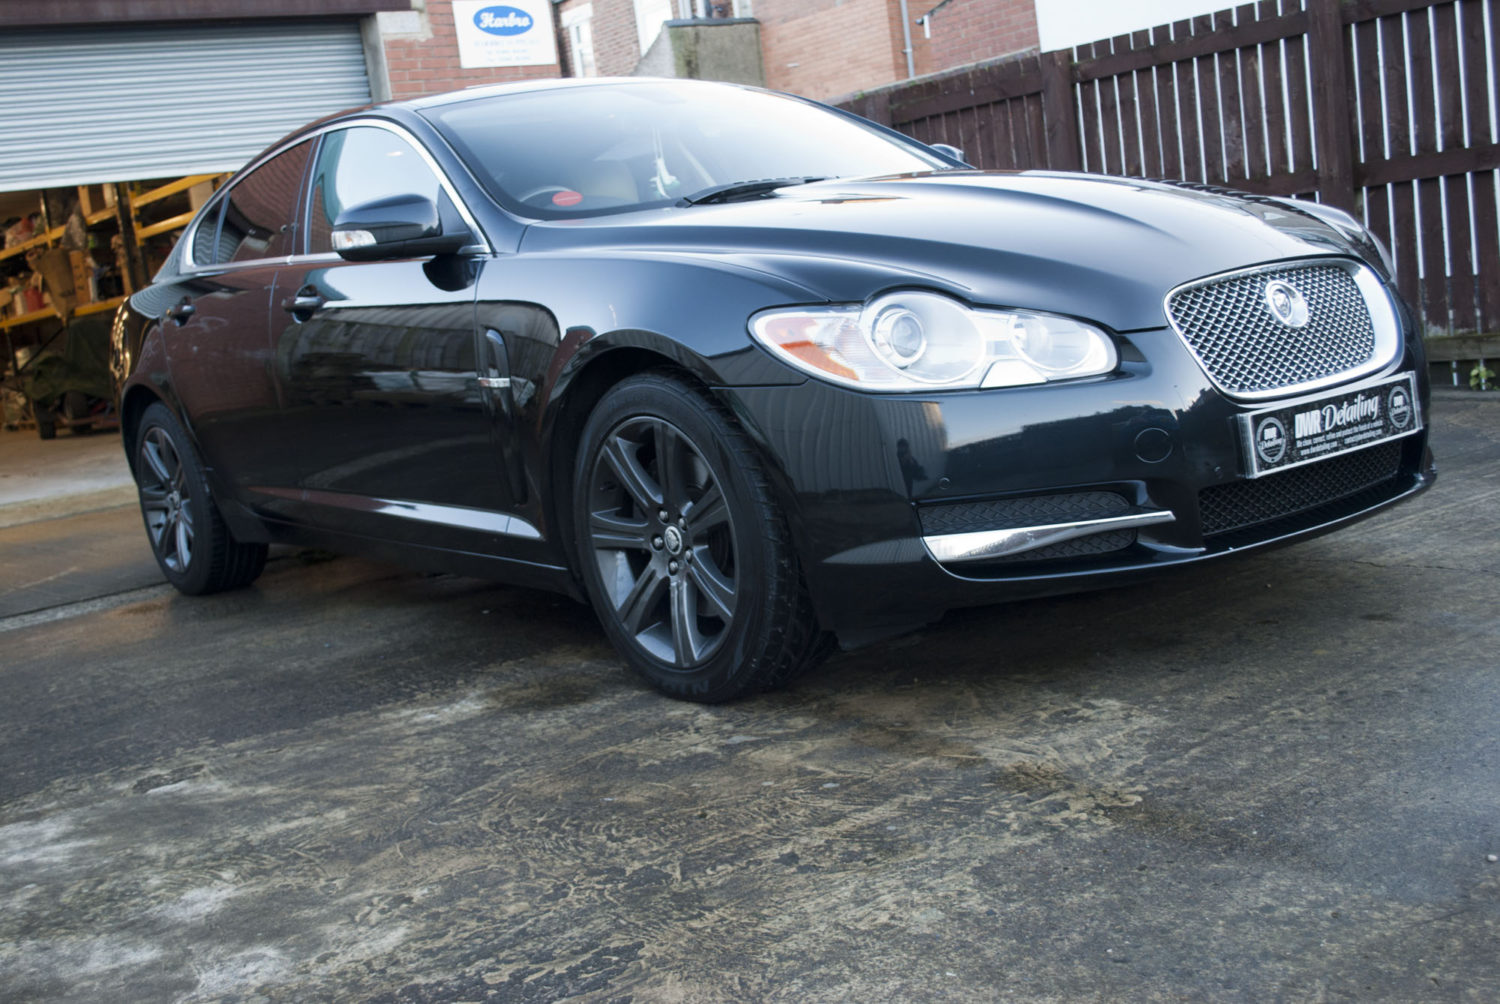 Jaguar XF Detailed by DWR Detailing